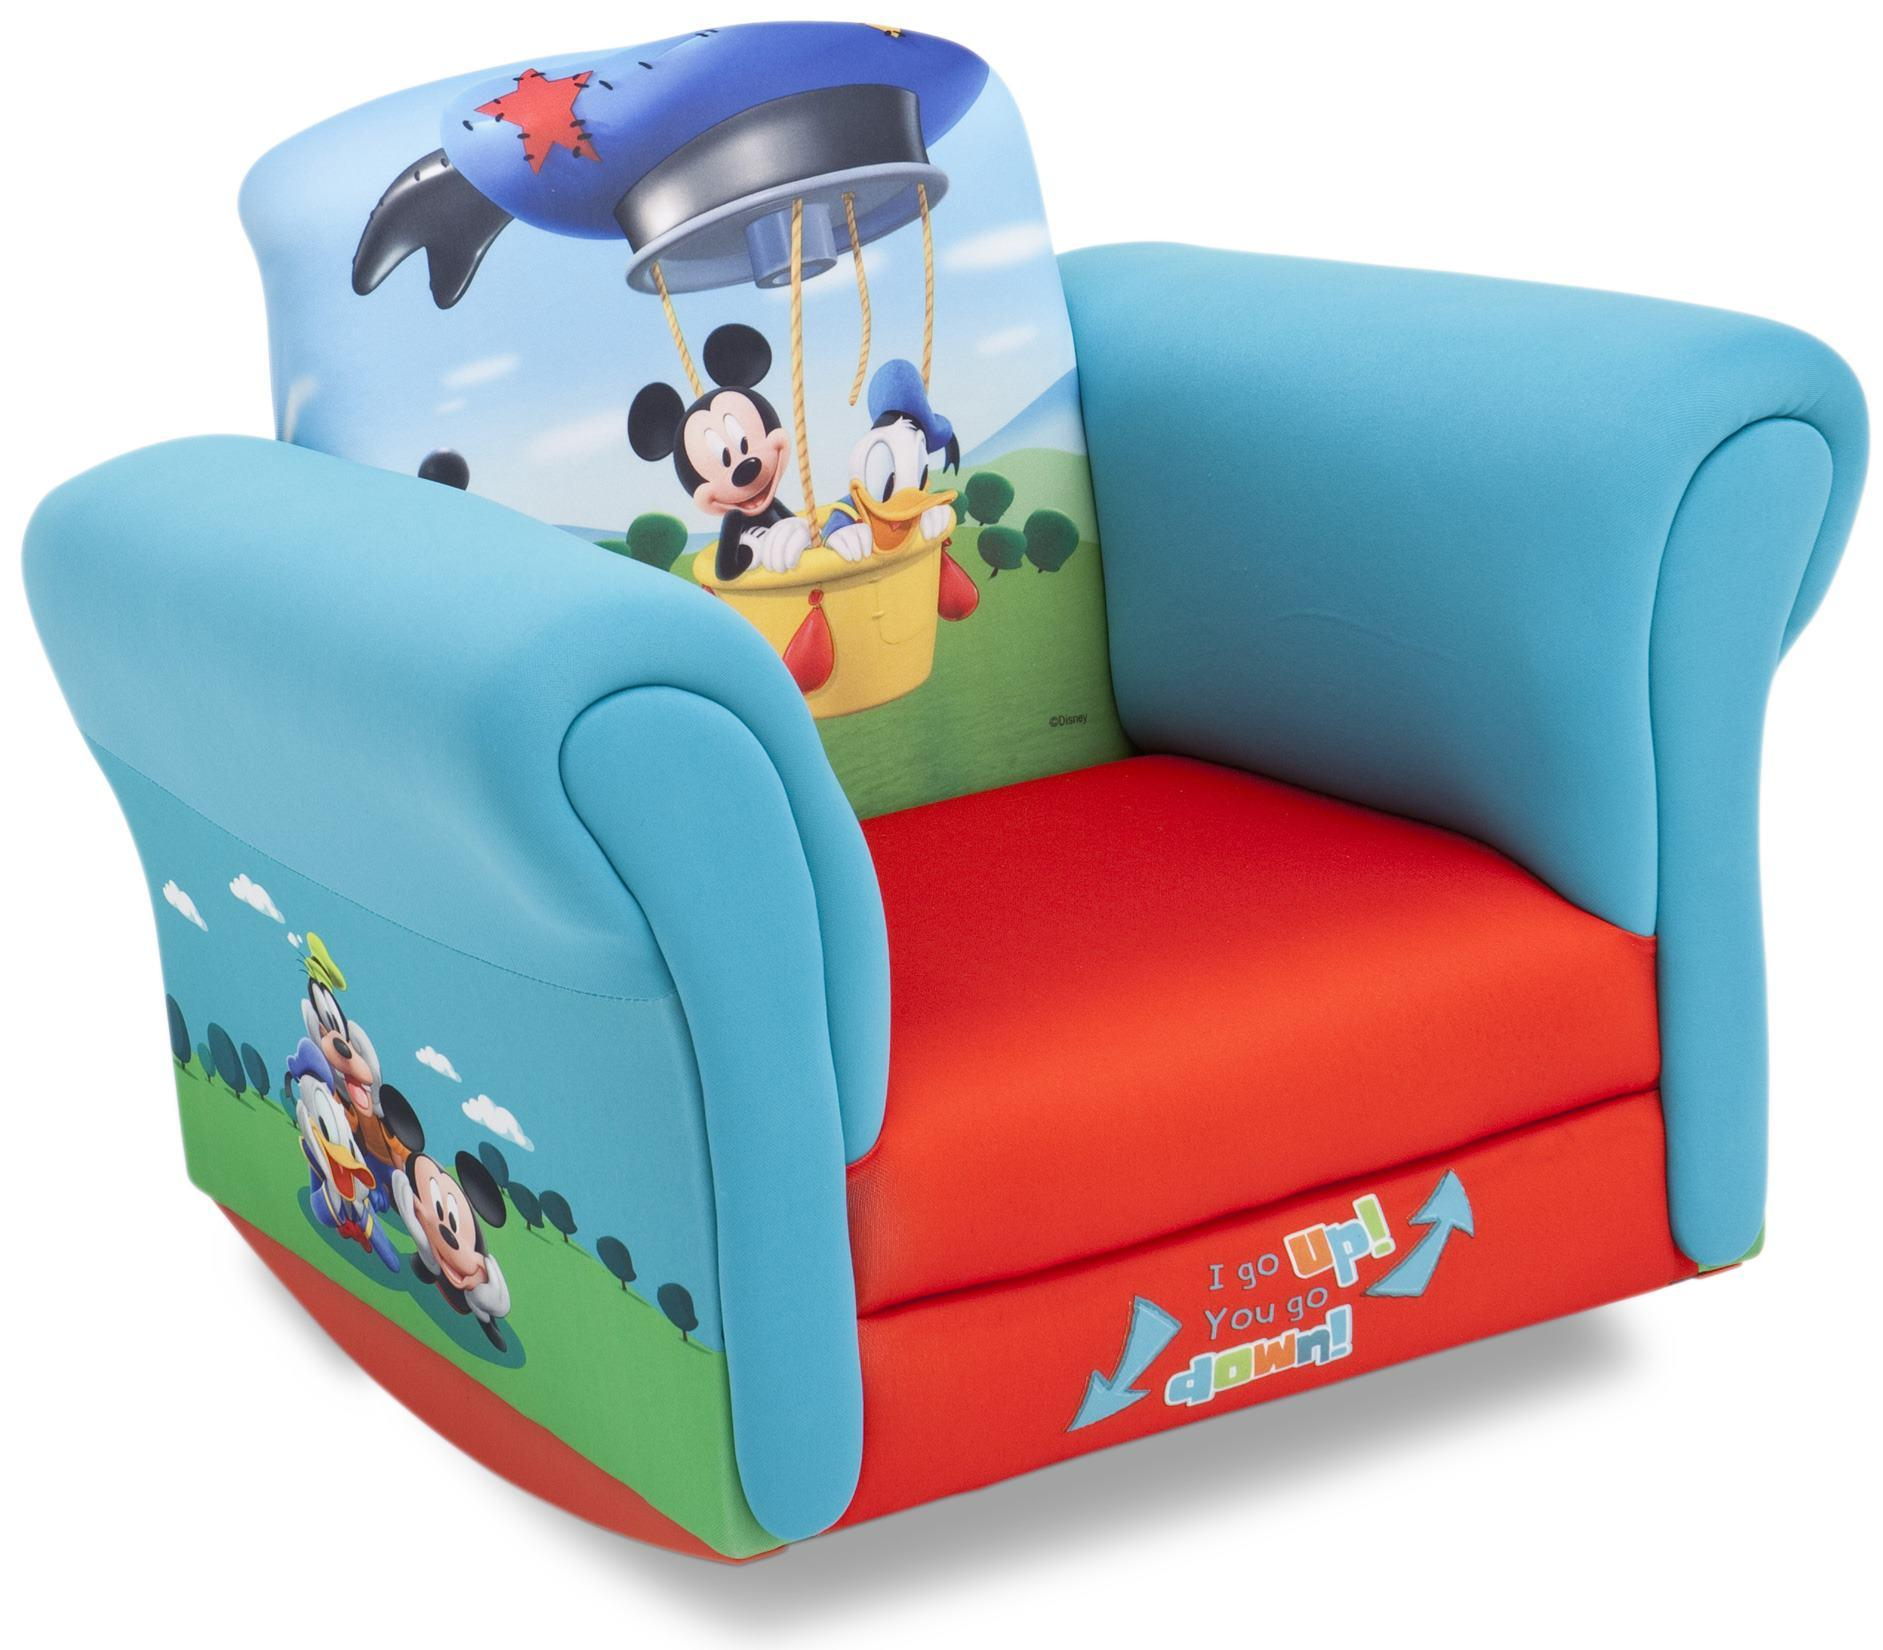 Baby Chair Delta Upholstered Child 39s Mickey Mouse Rocking Chair Kmart